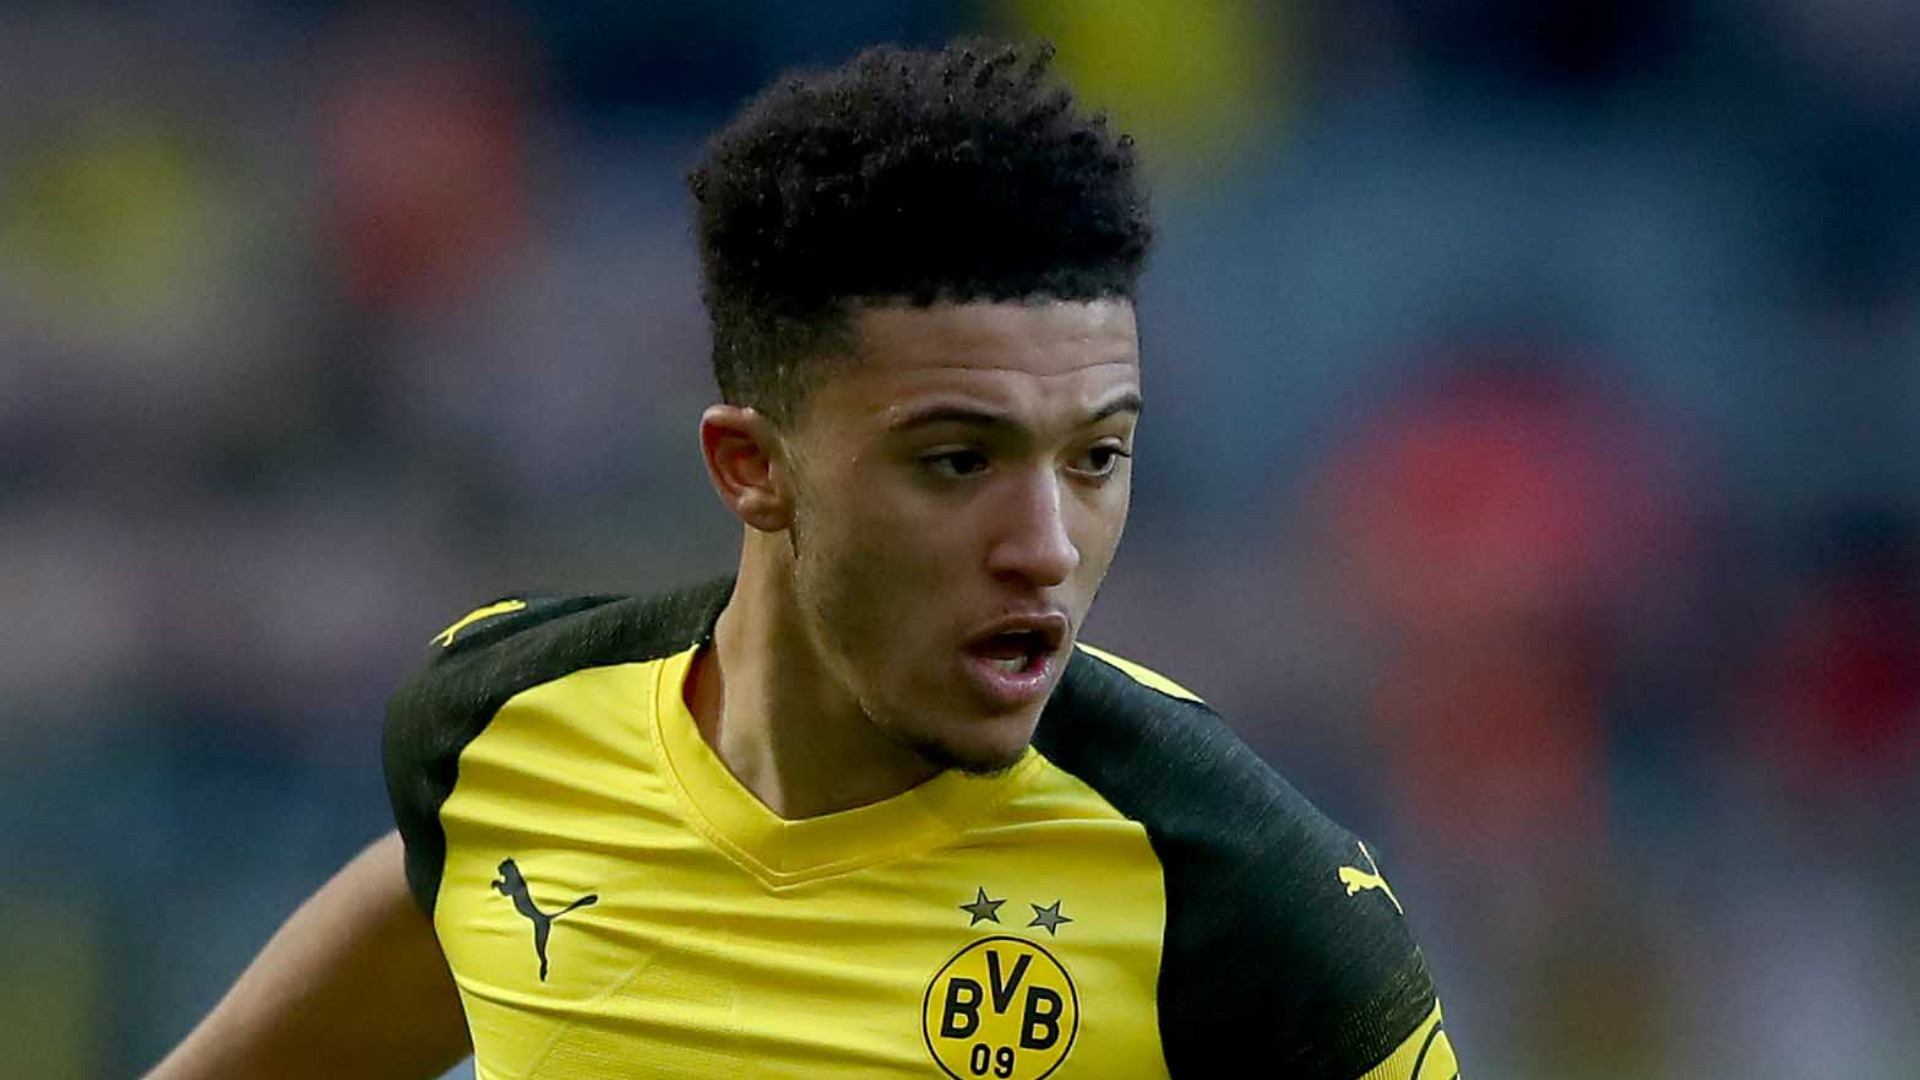 Sancho still has a lot to learn - Dortmund coach Favre